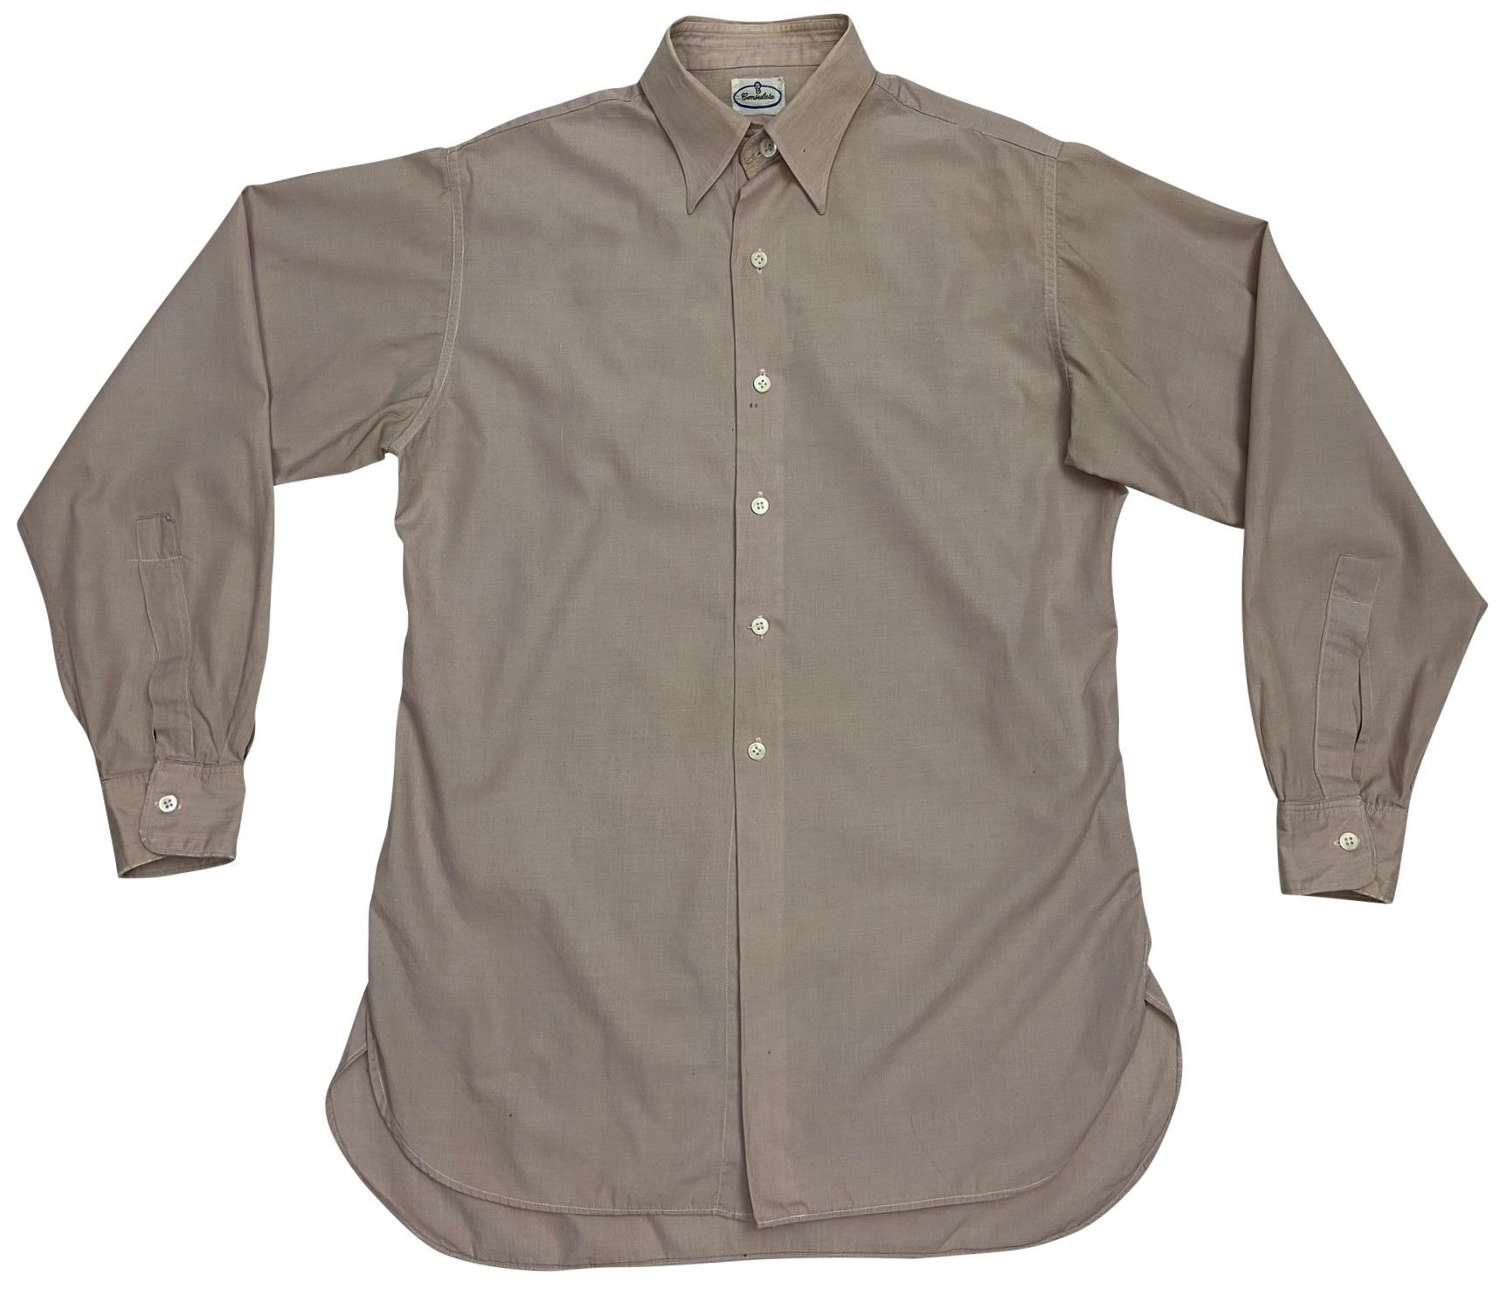 Original Early 1950s British Collared Shirt by 'Consulate'